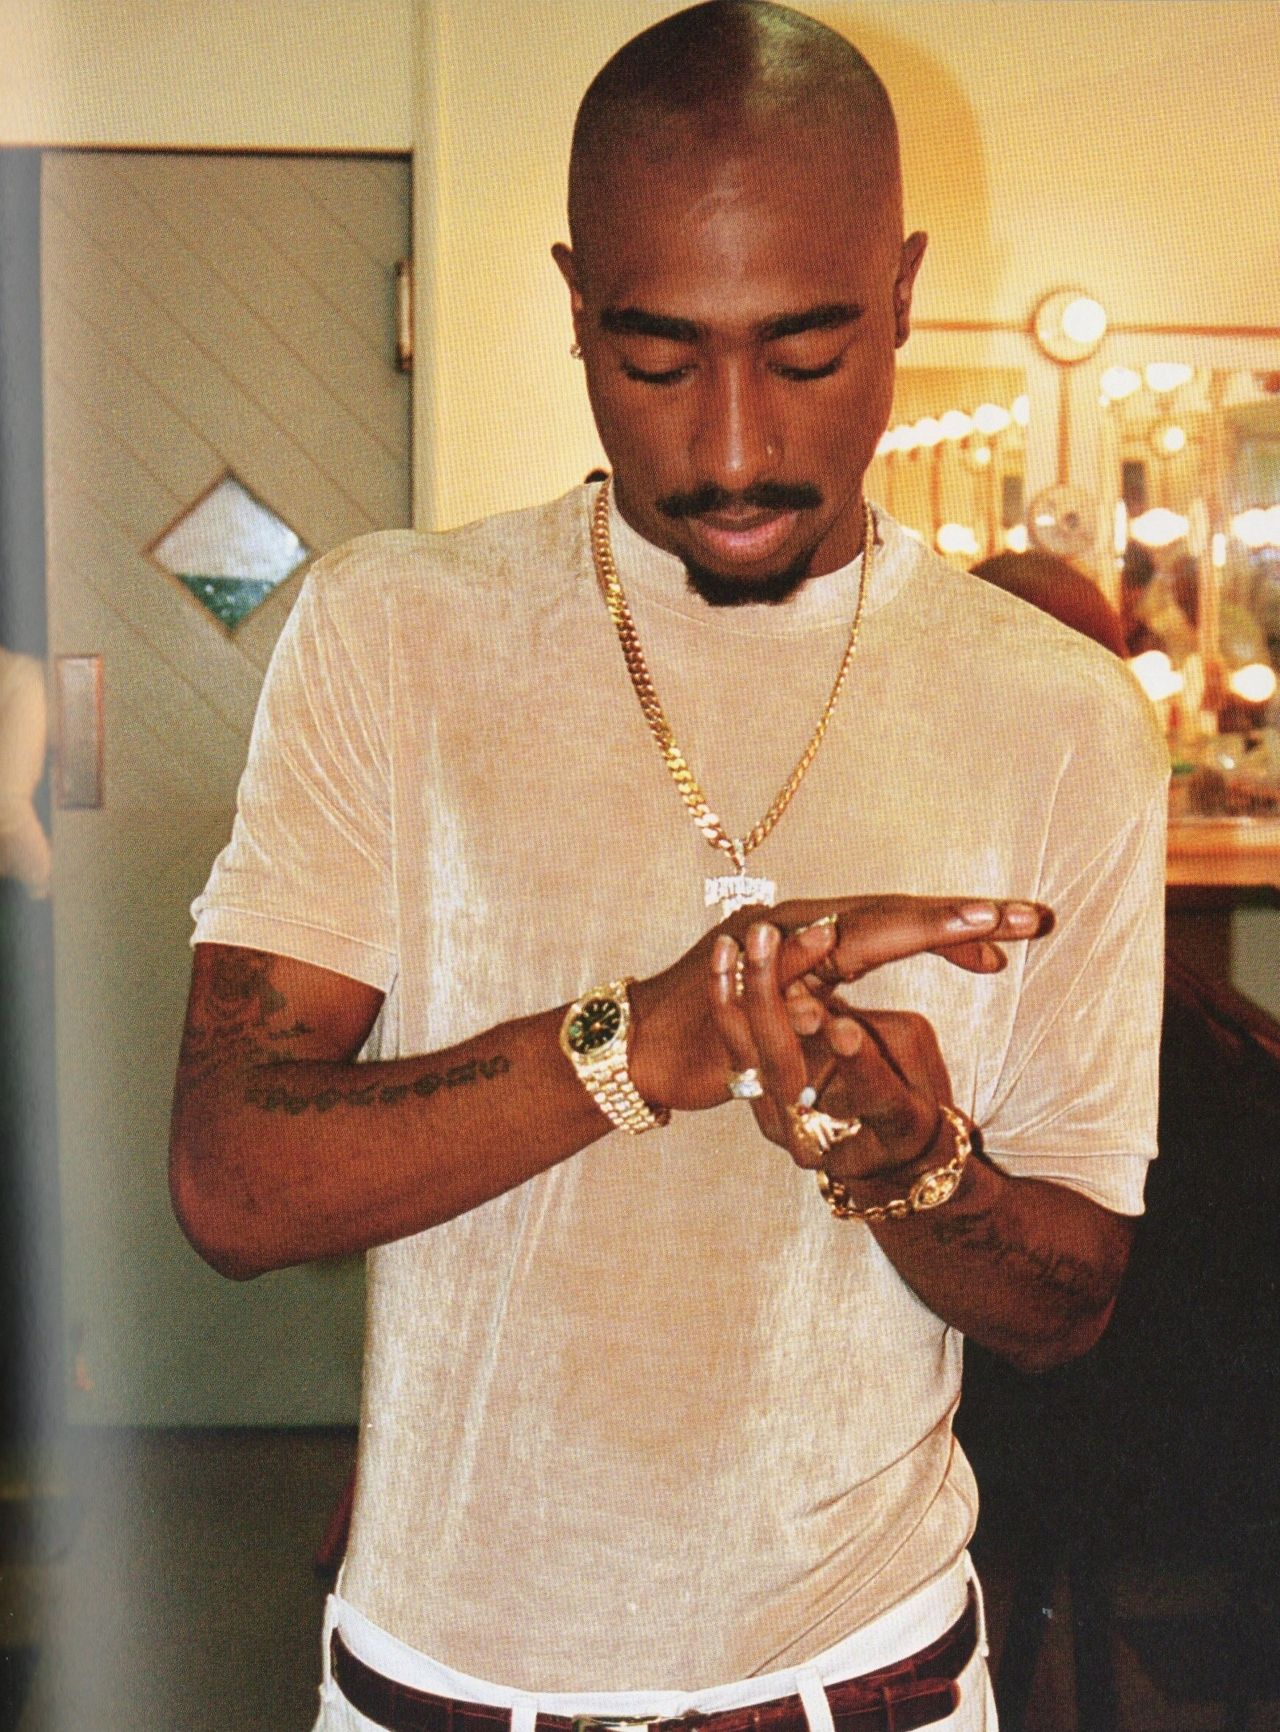 05566a48af6 Chαηεℓ | My Style in 2019 | Tupac pictures, 2pac, Tupac shakur